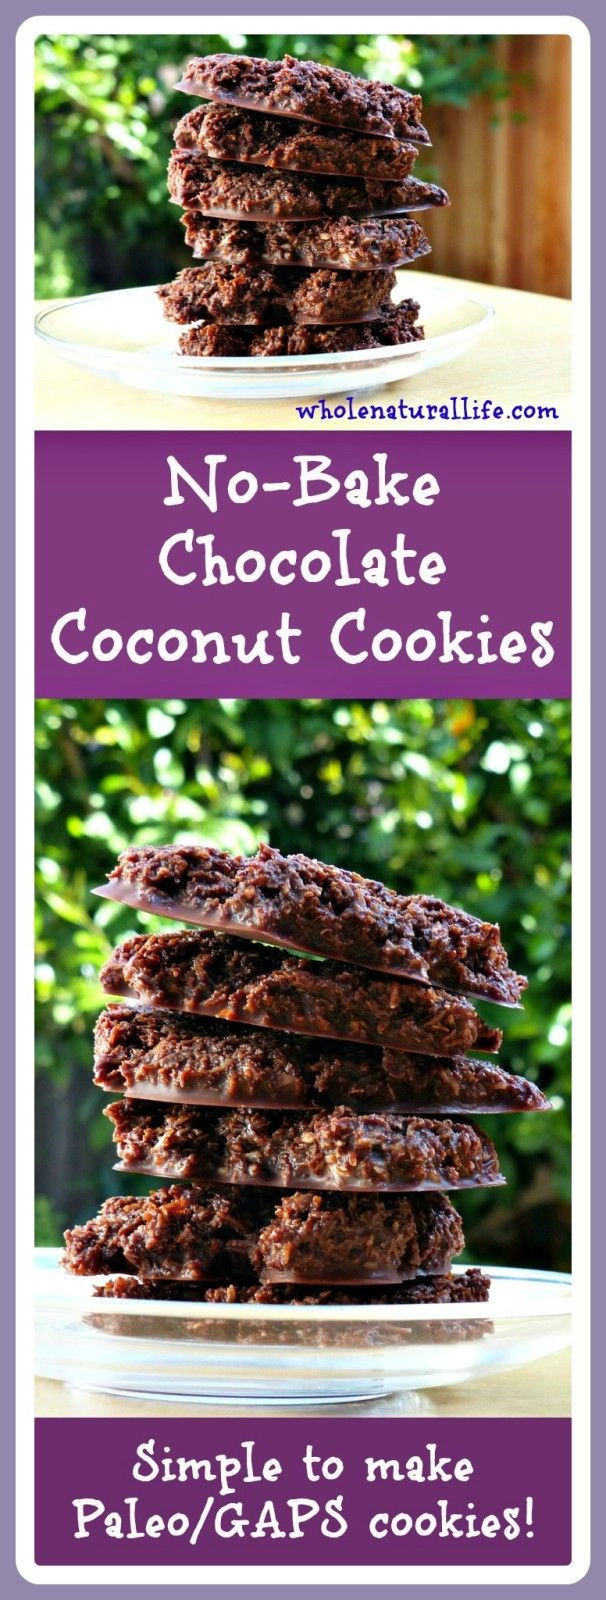 No-Bake Chocolate Coconut Cookies: Paleo/GAPS-friendly! Use a different sweetener for keto